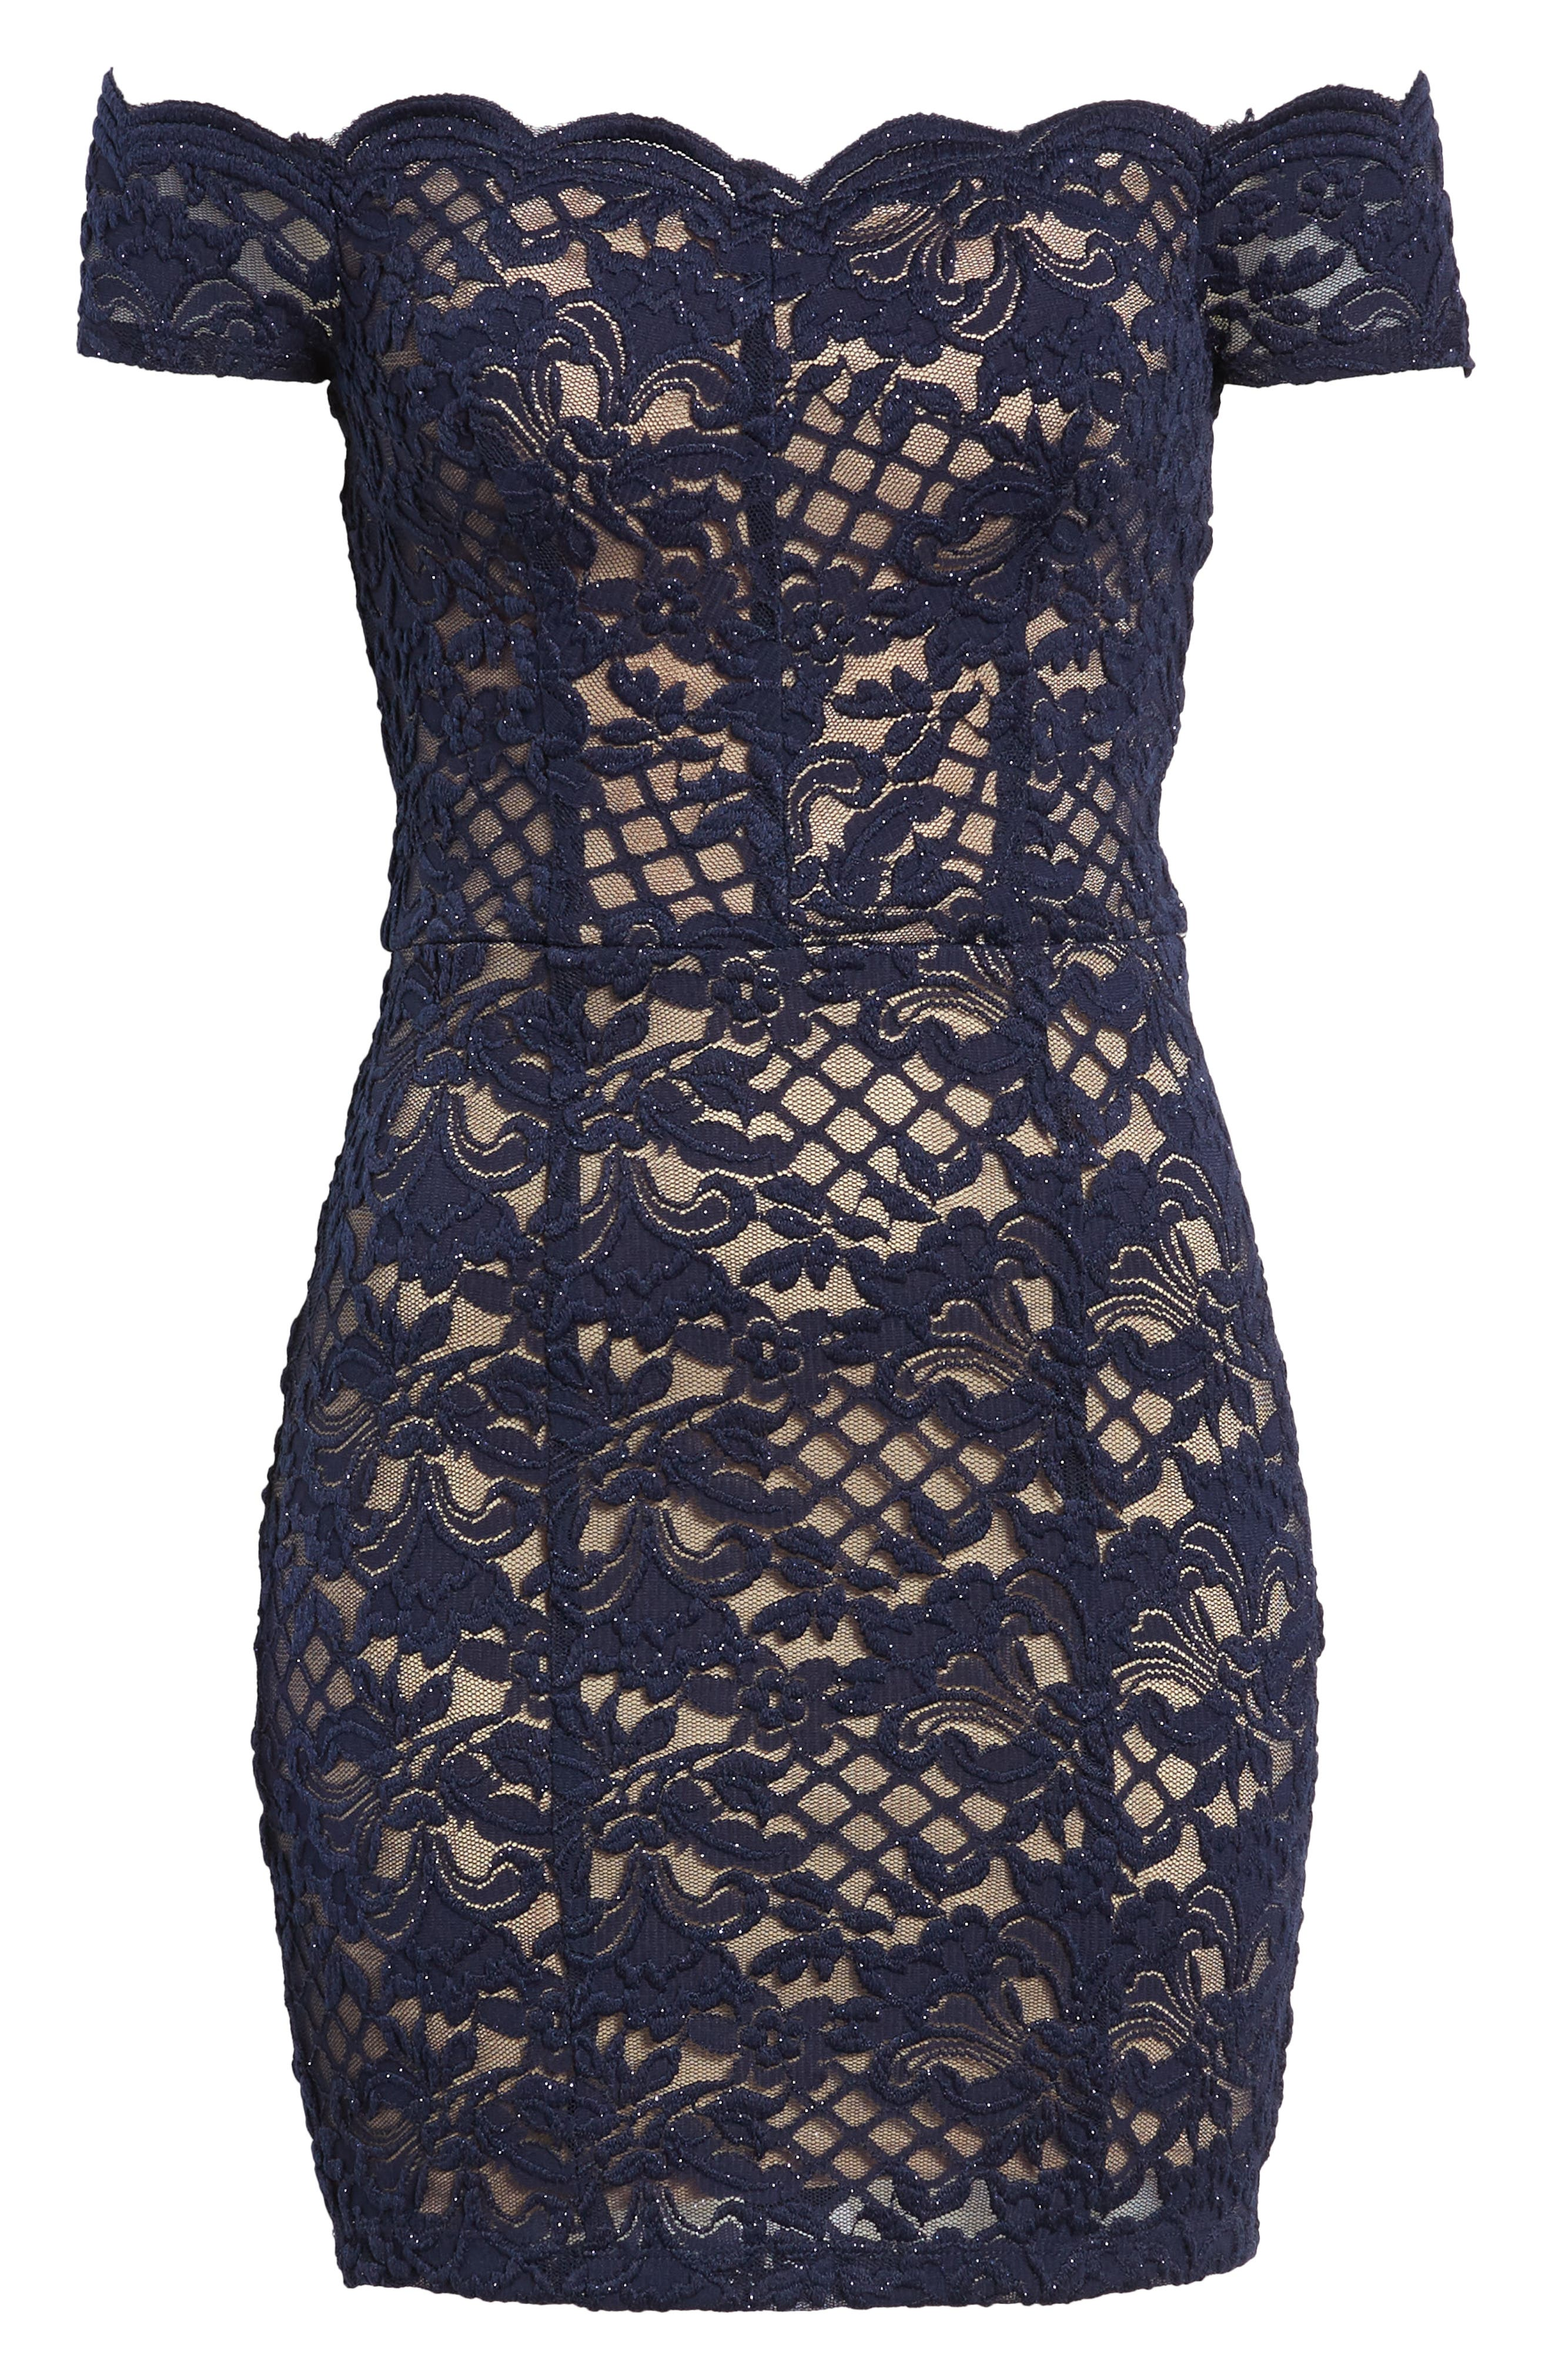 Lace Off the Shoulder Body-Con Dress,                             Alternate thumbnail 7, color,                             Navy/ Taupe